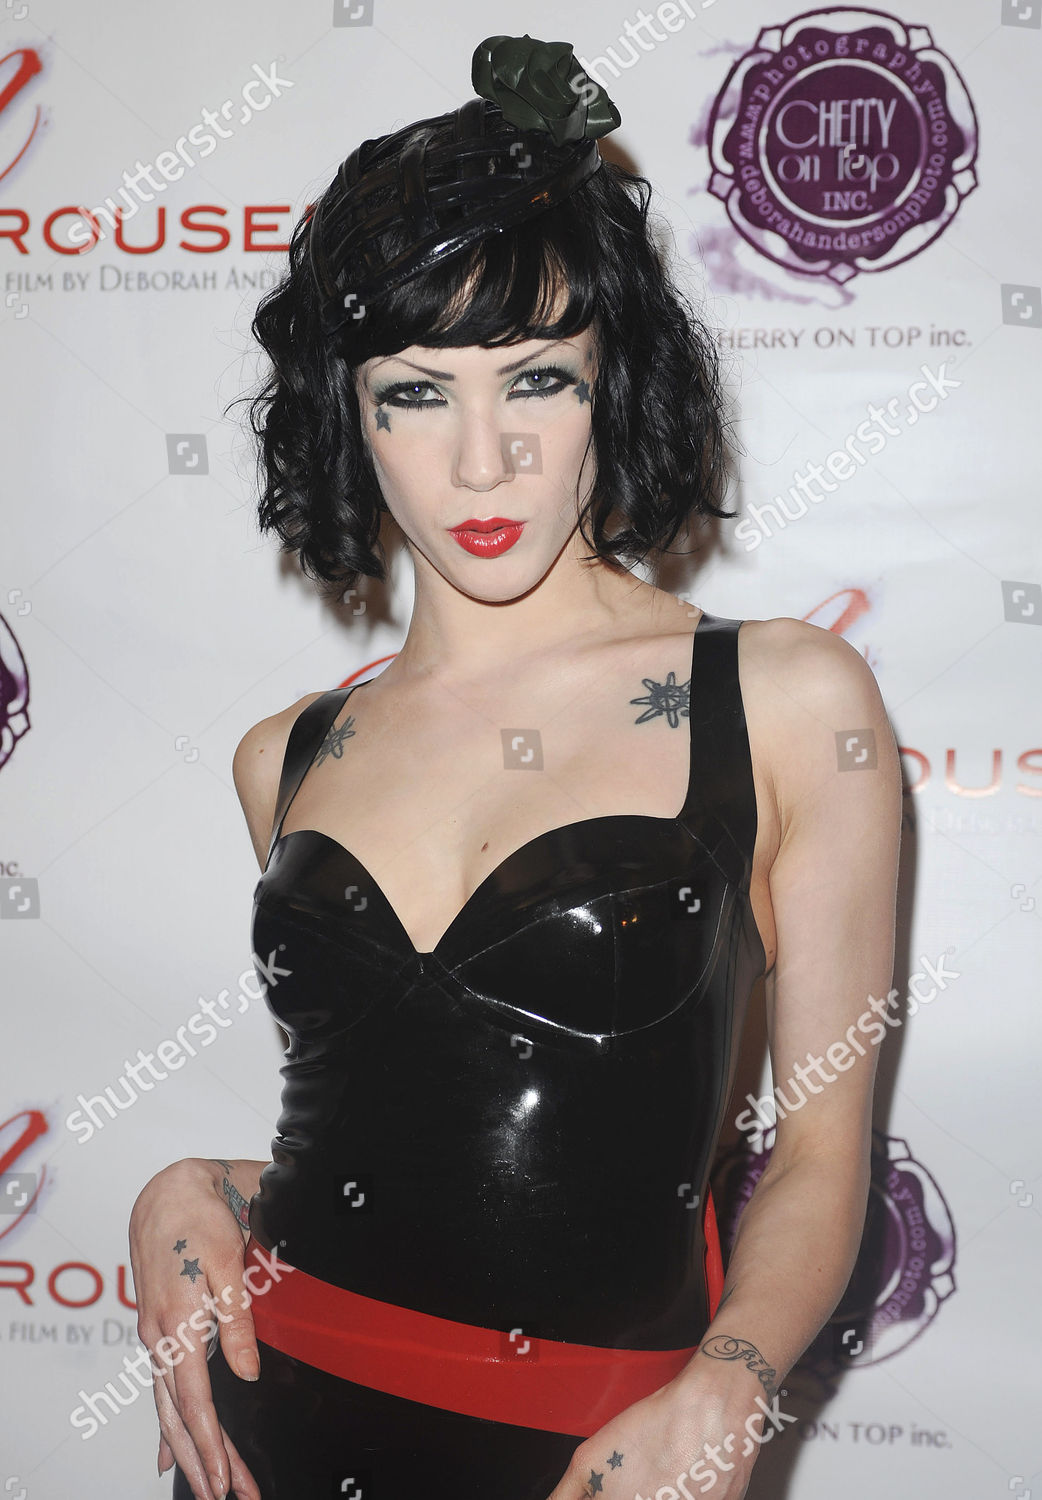 'Aroused' Film Premiere, Los Angeles, America 01 May 2013